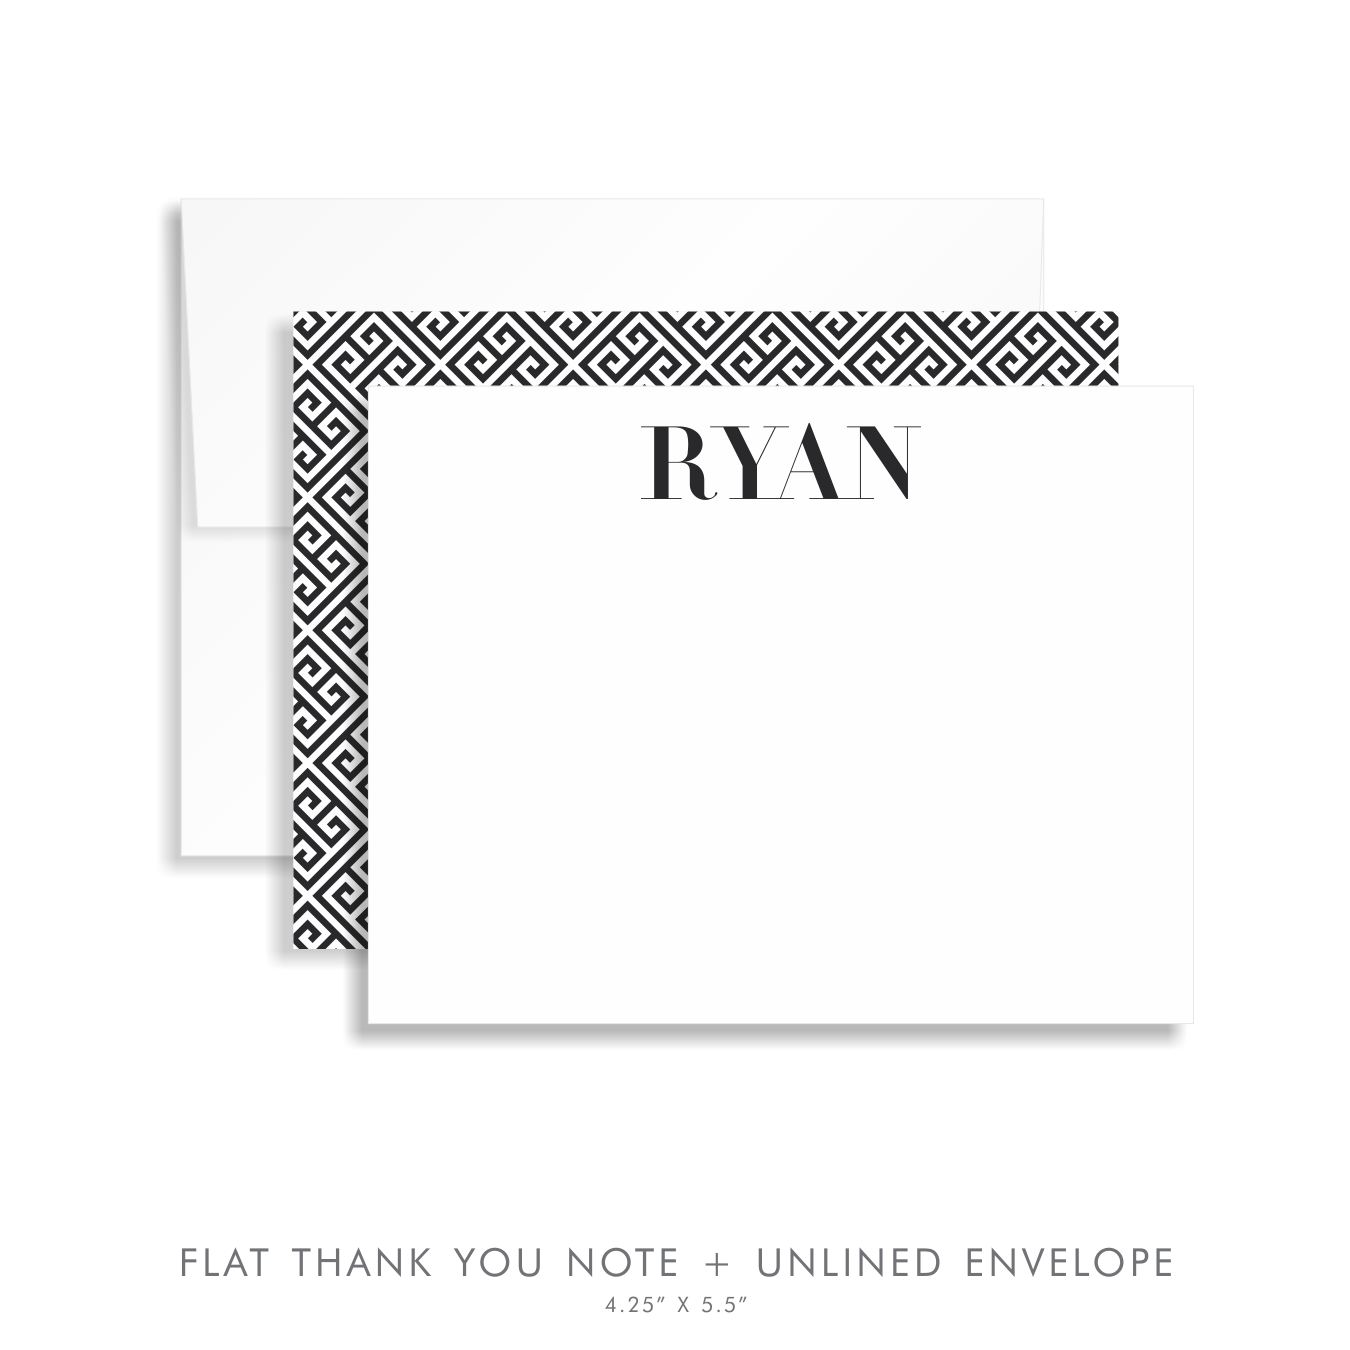 06 BAR MITZVAH INVITATION 5402-1 FLAT THANK YOU NOTE.png